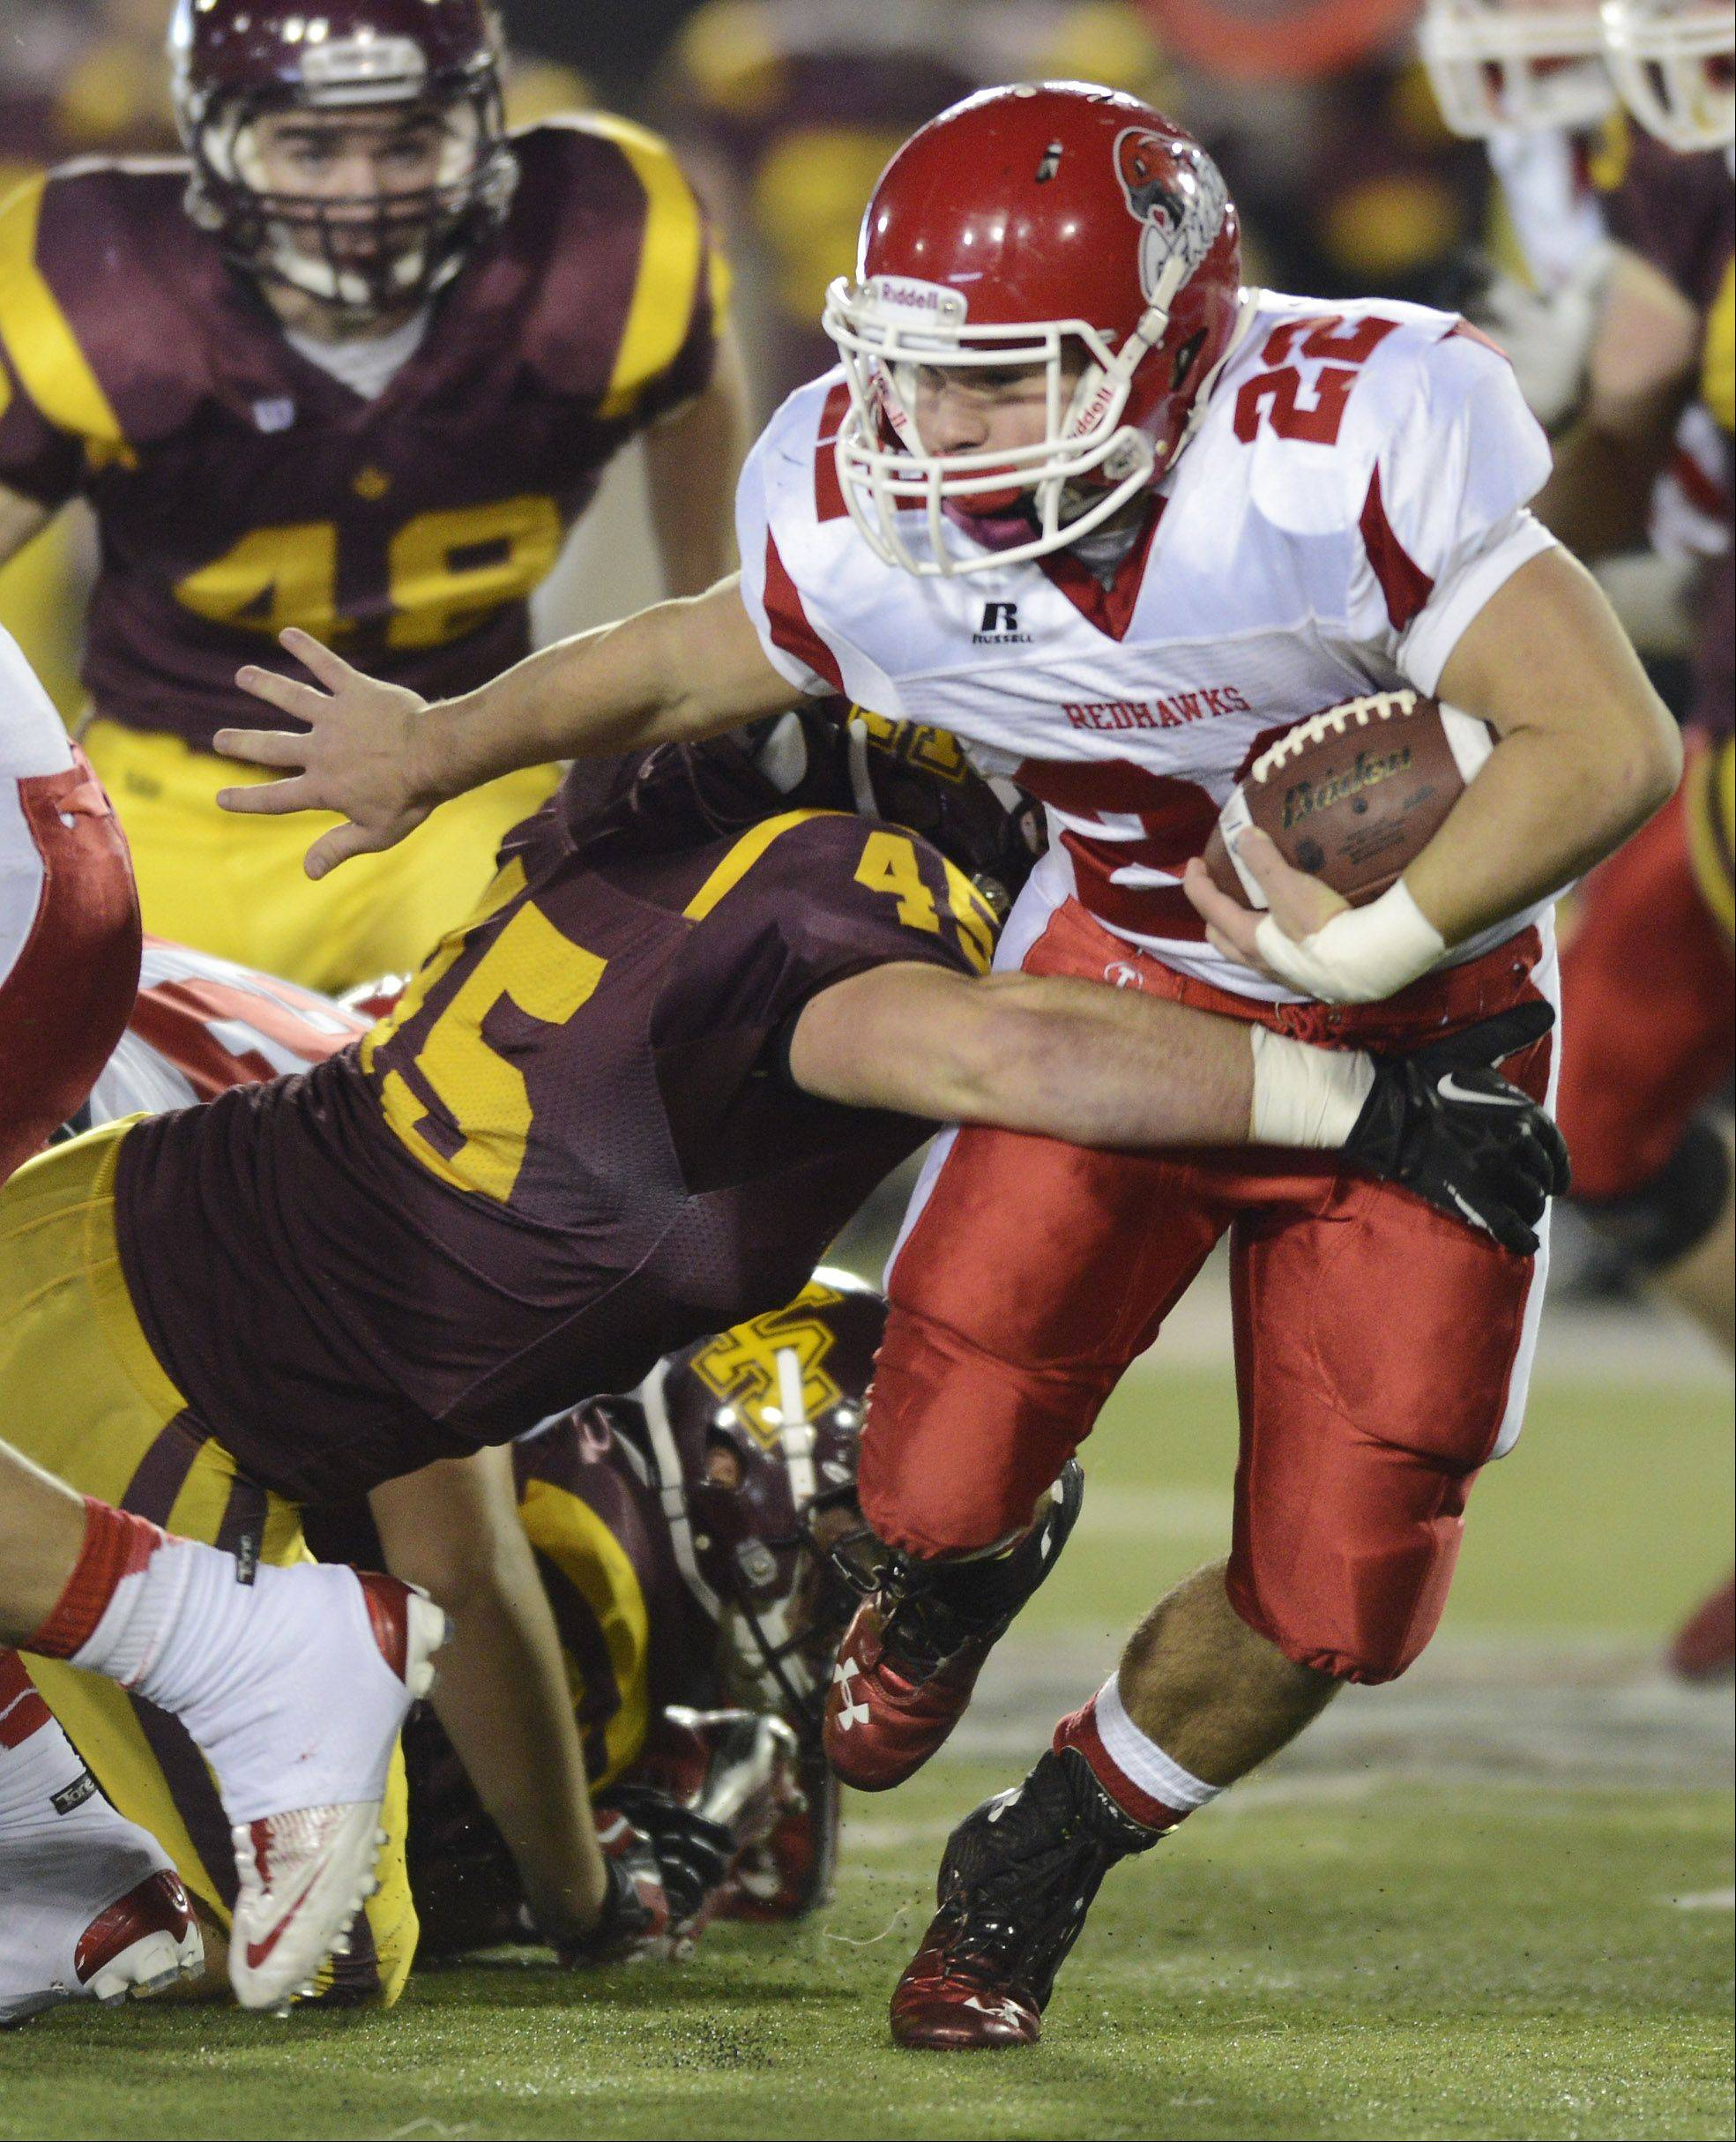 Naperville Central's Kevin Clifford tries to get past Loyola's Brian O'Brien during the Class 8A football final in DeKalb Saturday.